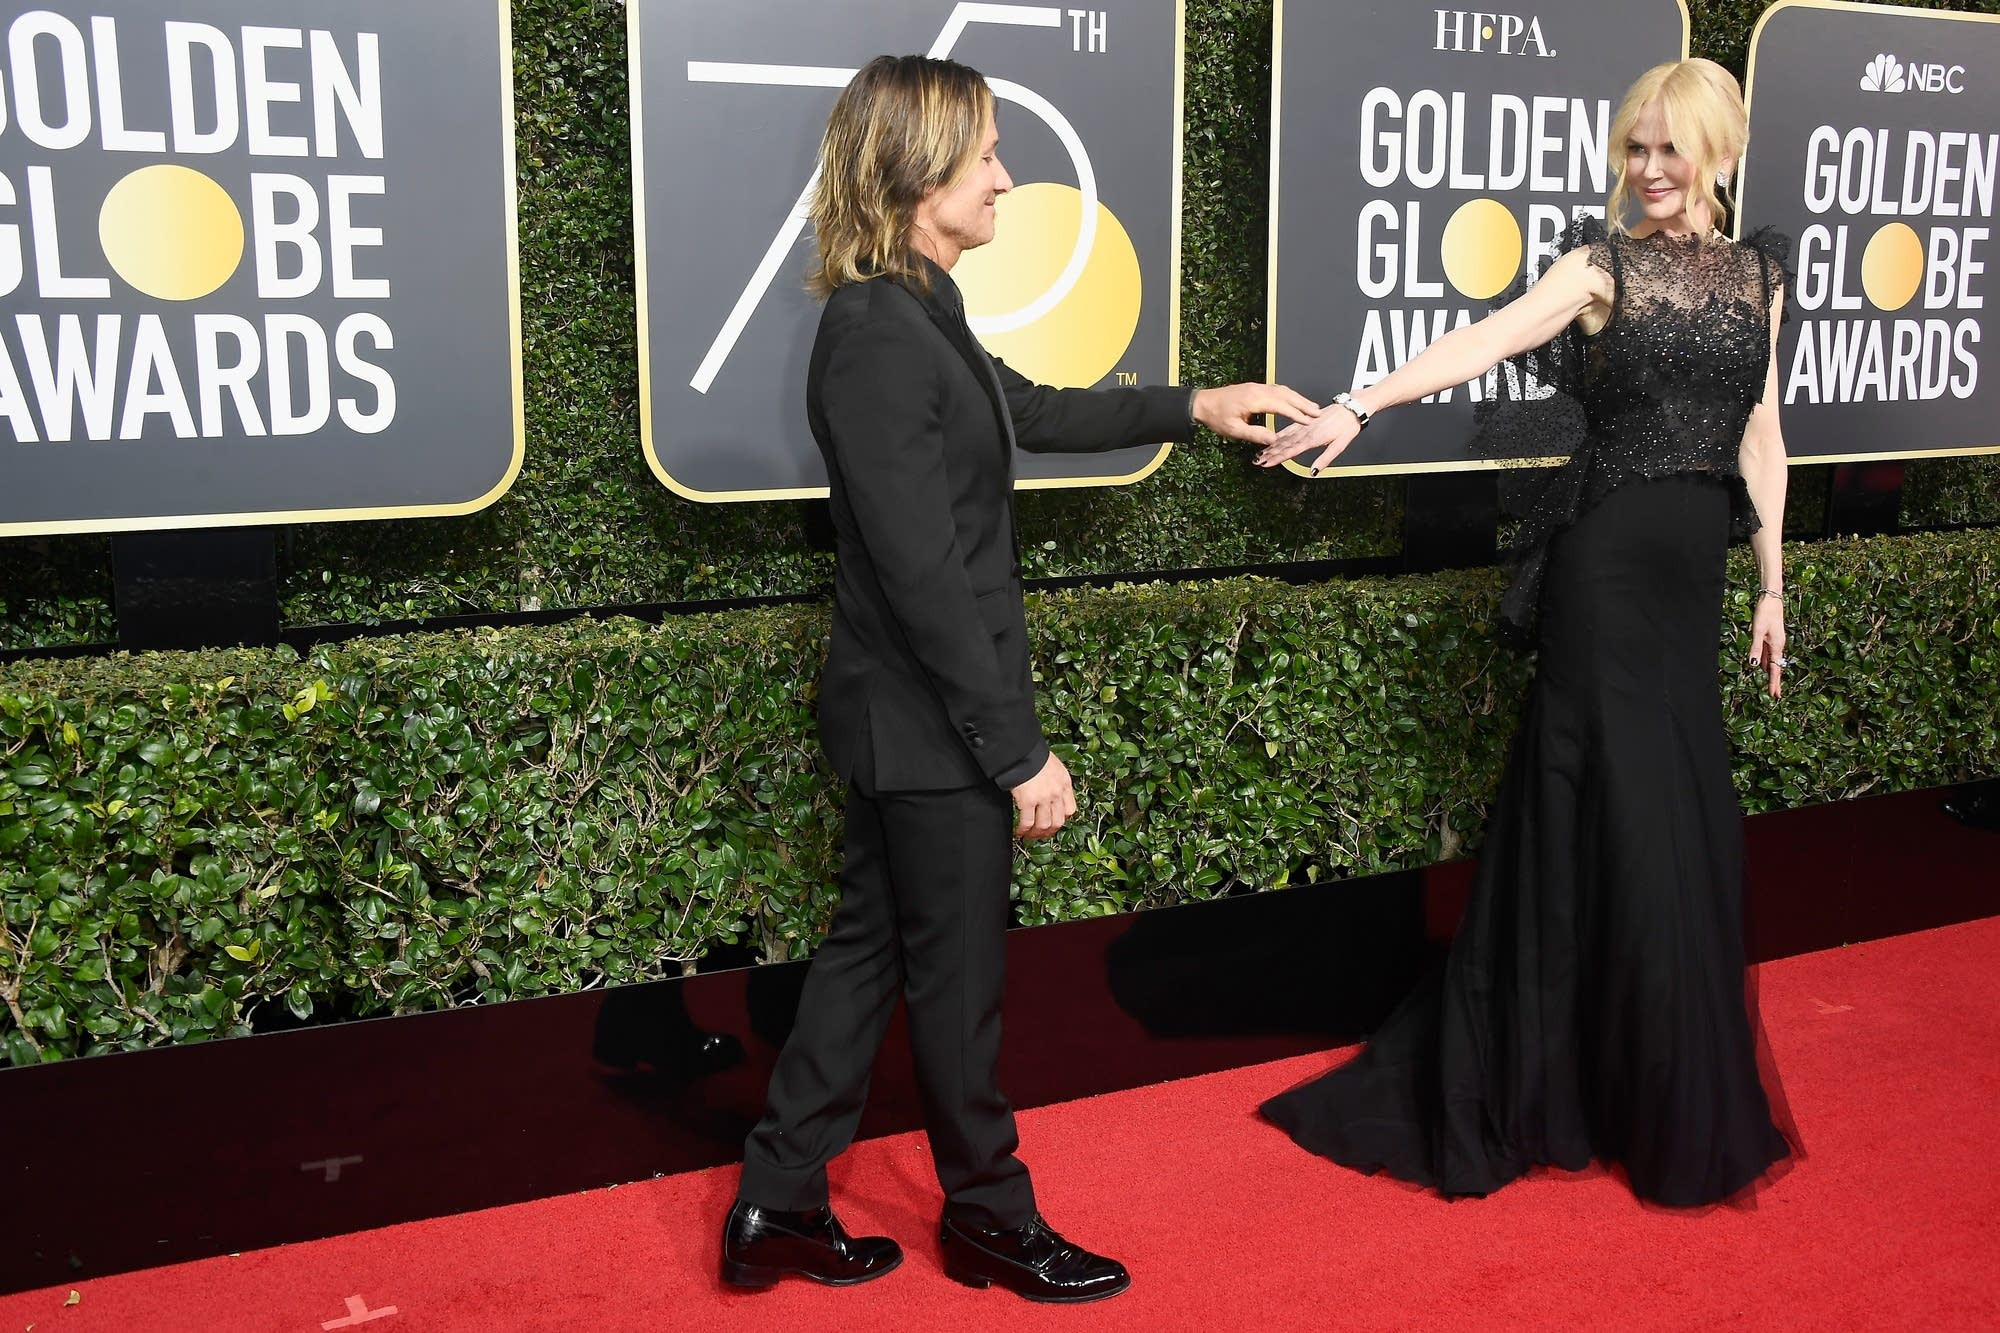 Keith Urban and Nicole Kidman arrive at the Golden Globes.